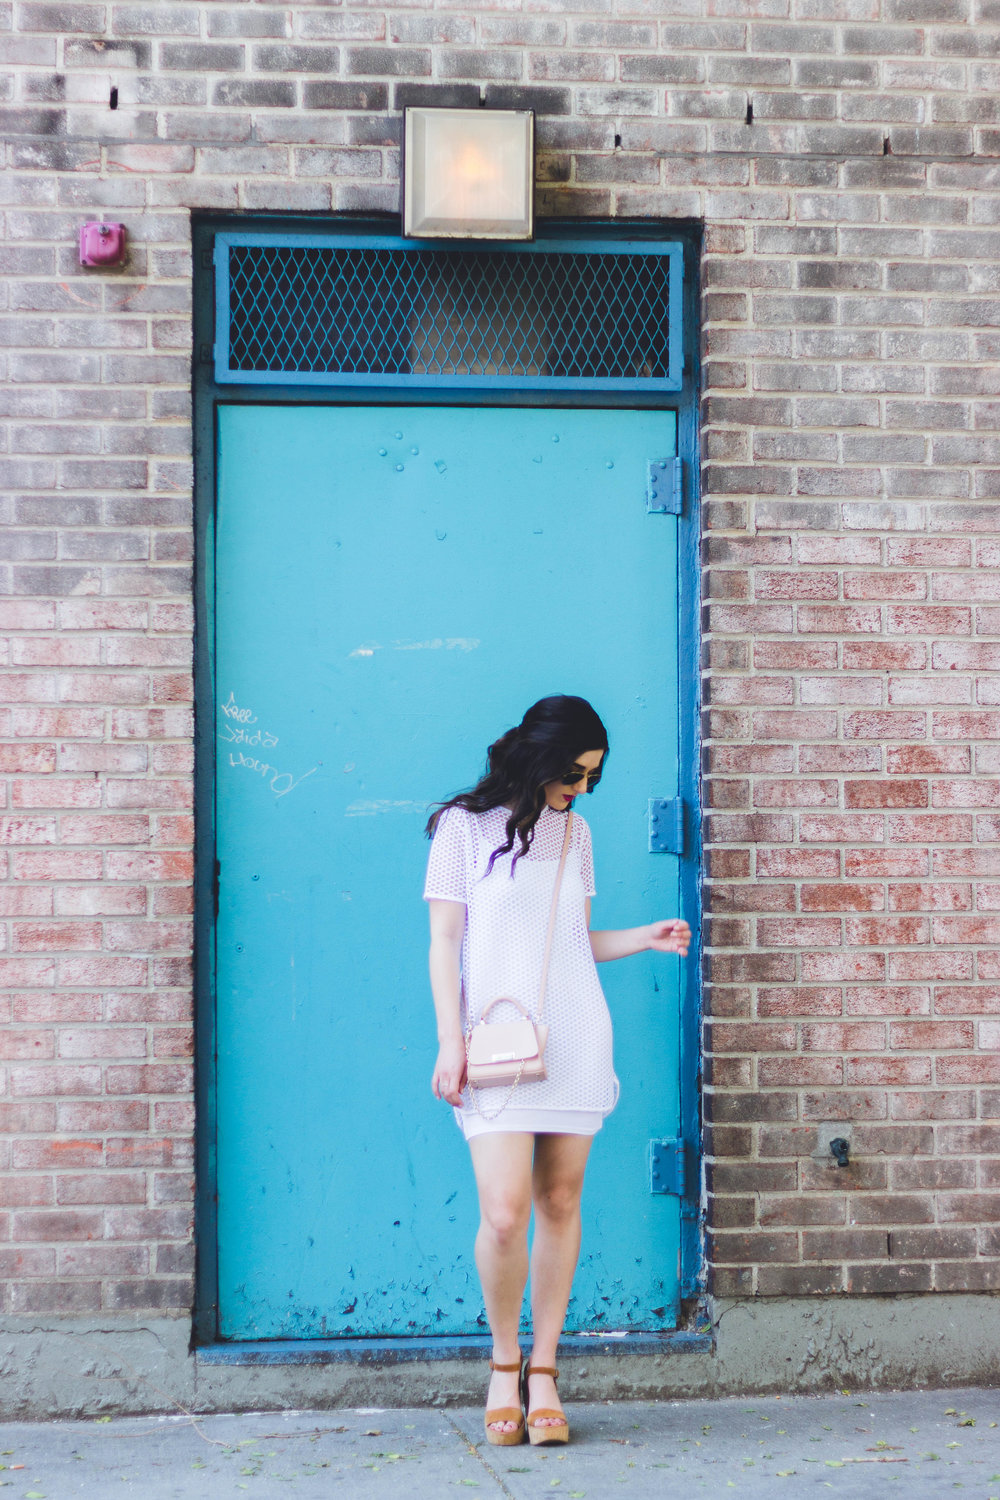 White Mesh Dress Love My Fiance Hate Being Engaged Esther Santer Fashion Blog NYC Street Style Blogger Outfit OOTD Trendy Summer Cork Wedges ASOS Dolce Vita Aviators Sunglasses RayBan Girl Women Look Inspiration Hair Beauty Model Photoshoot  New York.jpg